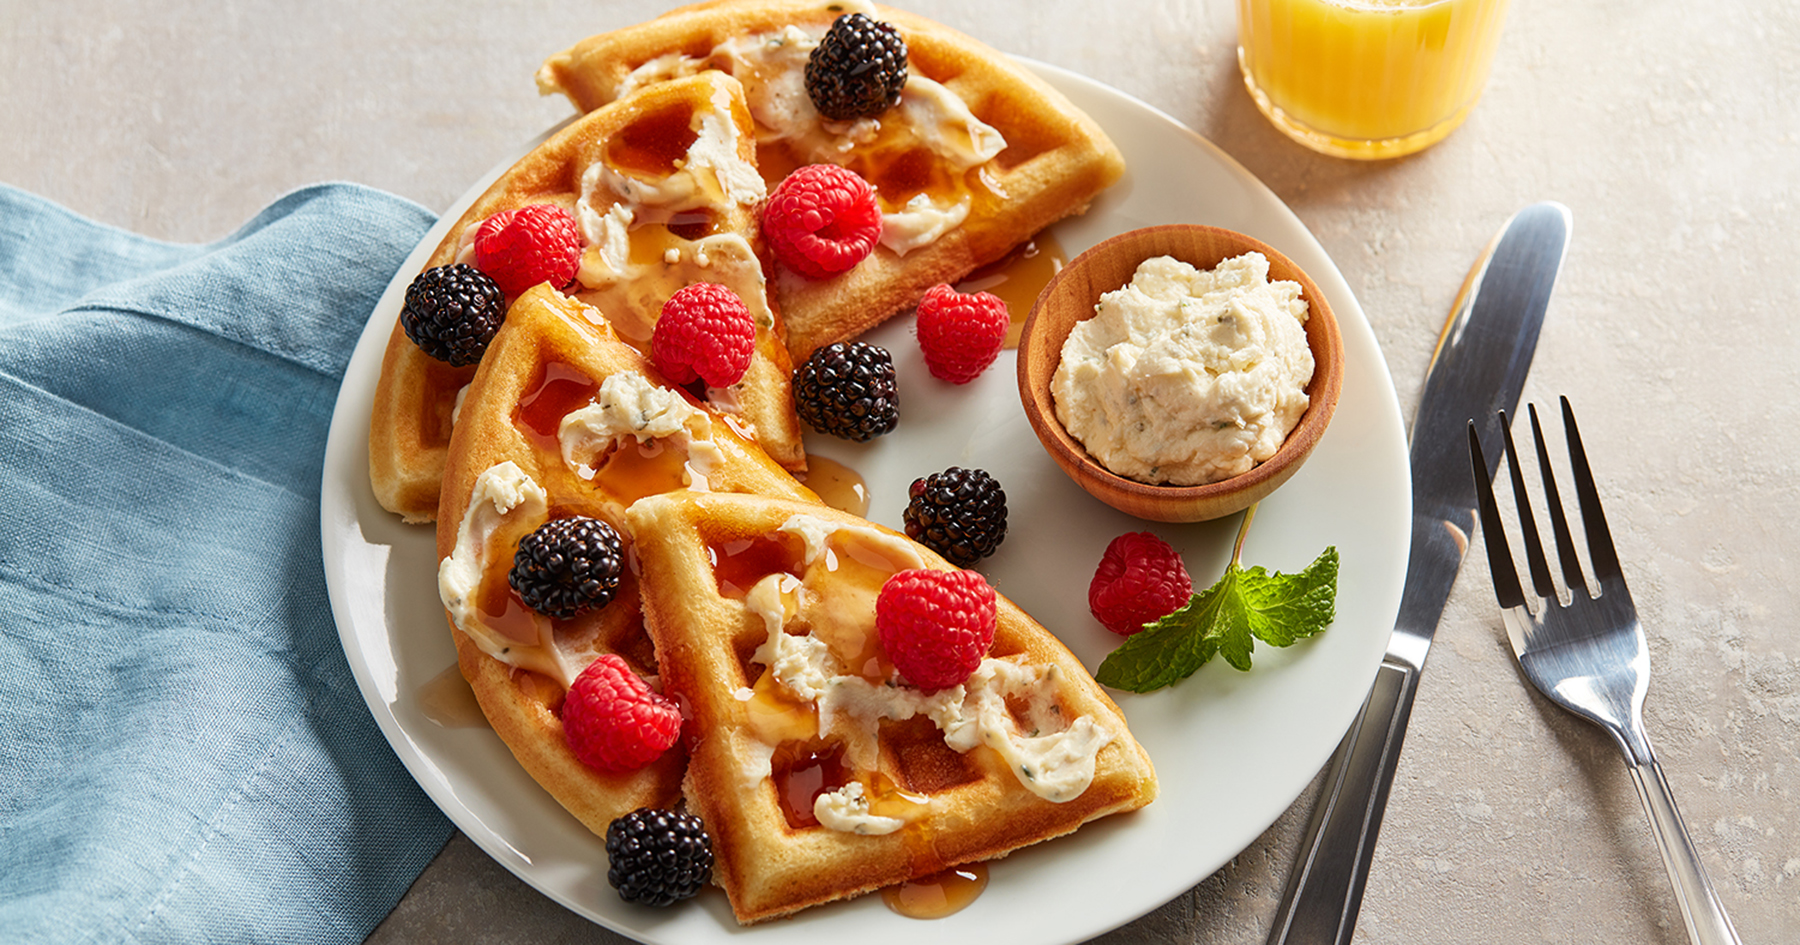 Savory Waffles with Whipped Cheese and Berries